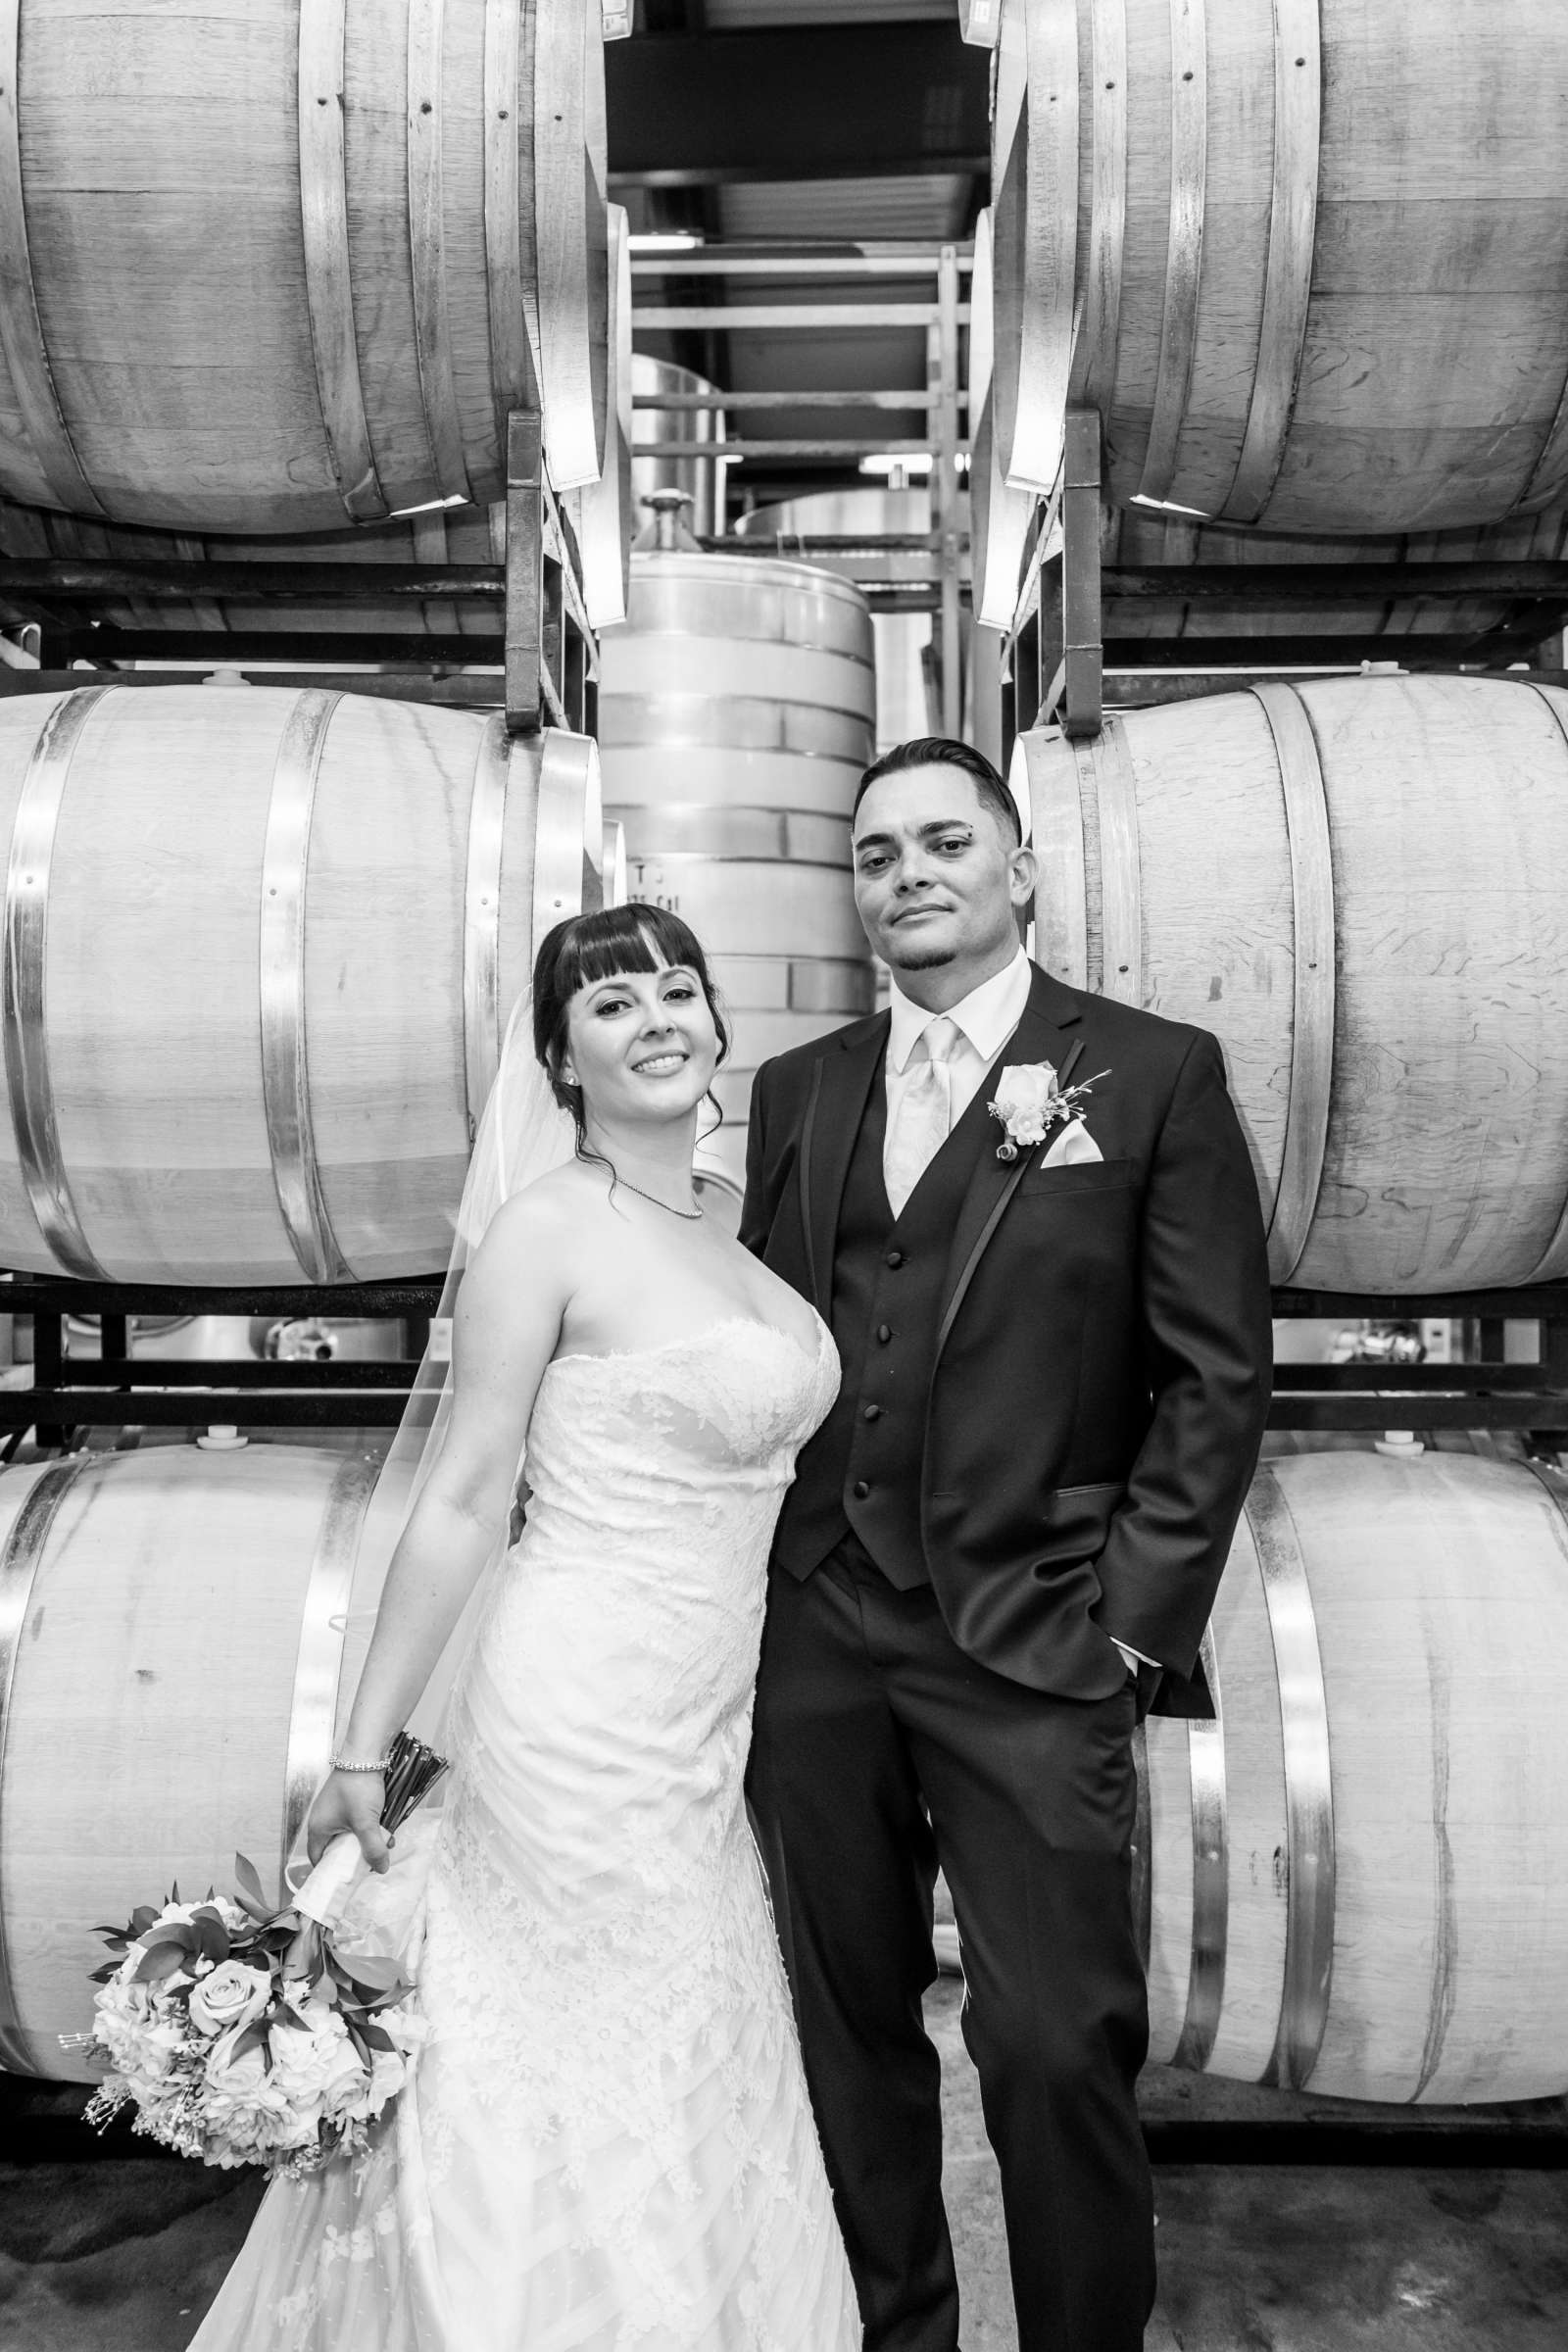 Orfila Vineyards Wedding, Tulasi and Richard Wedding Photo #40 by True Photography